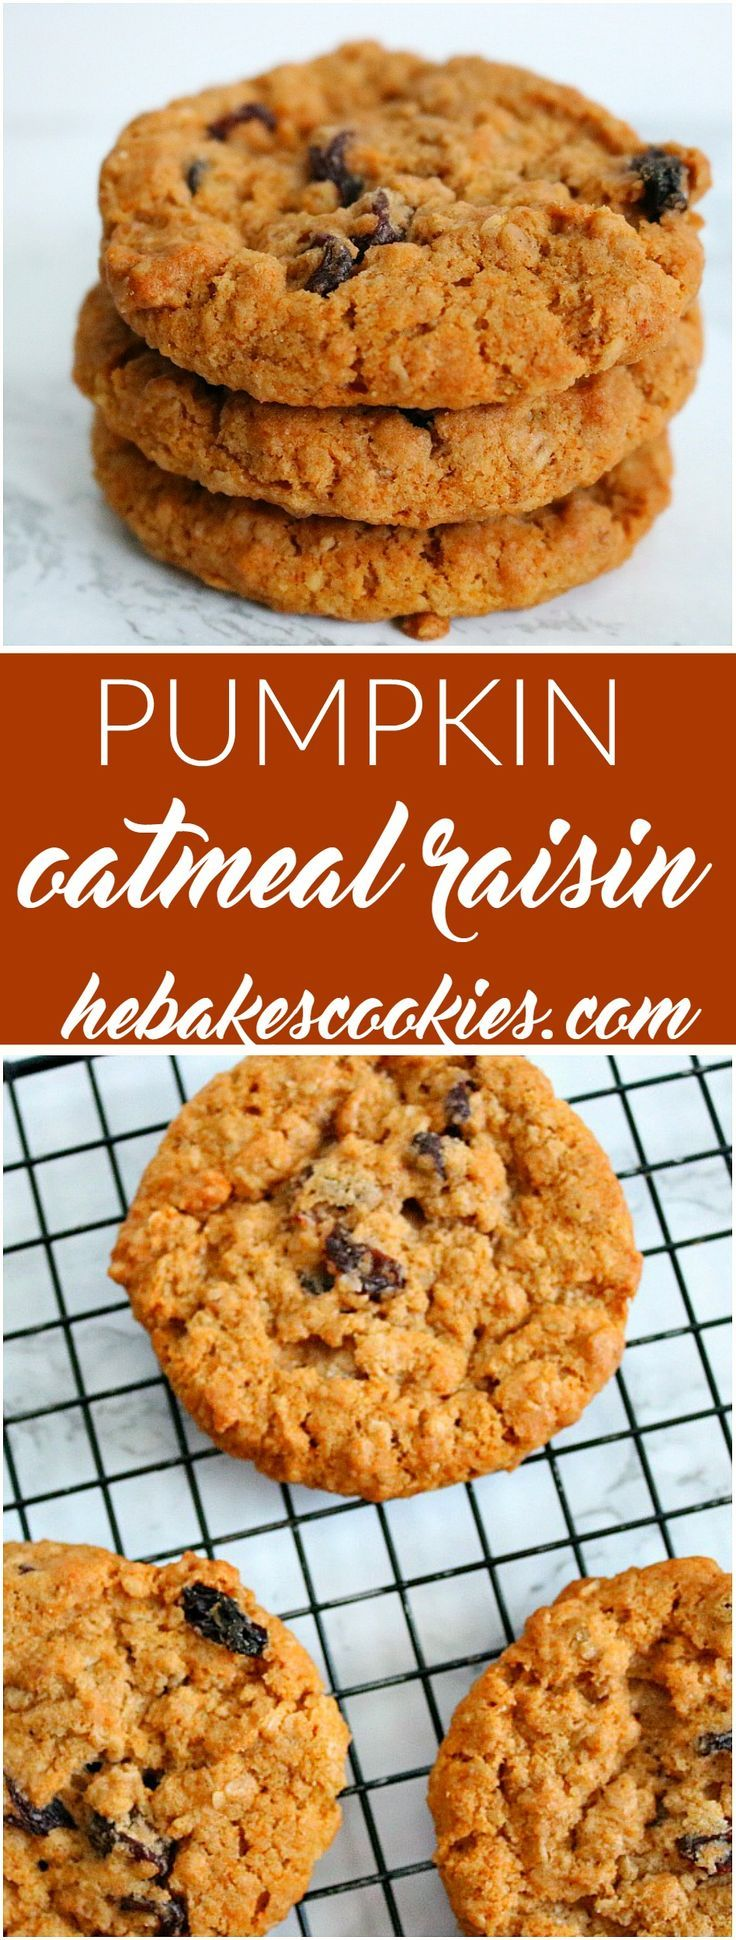 If you like pumpkin and oatmeal raisin cookies, you will love this mash up…